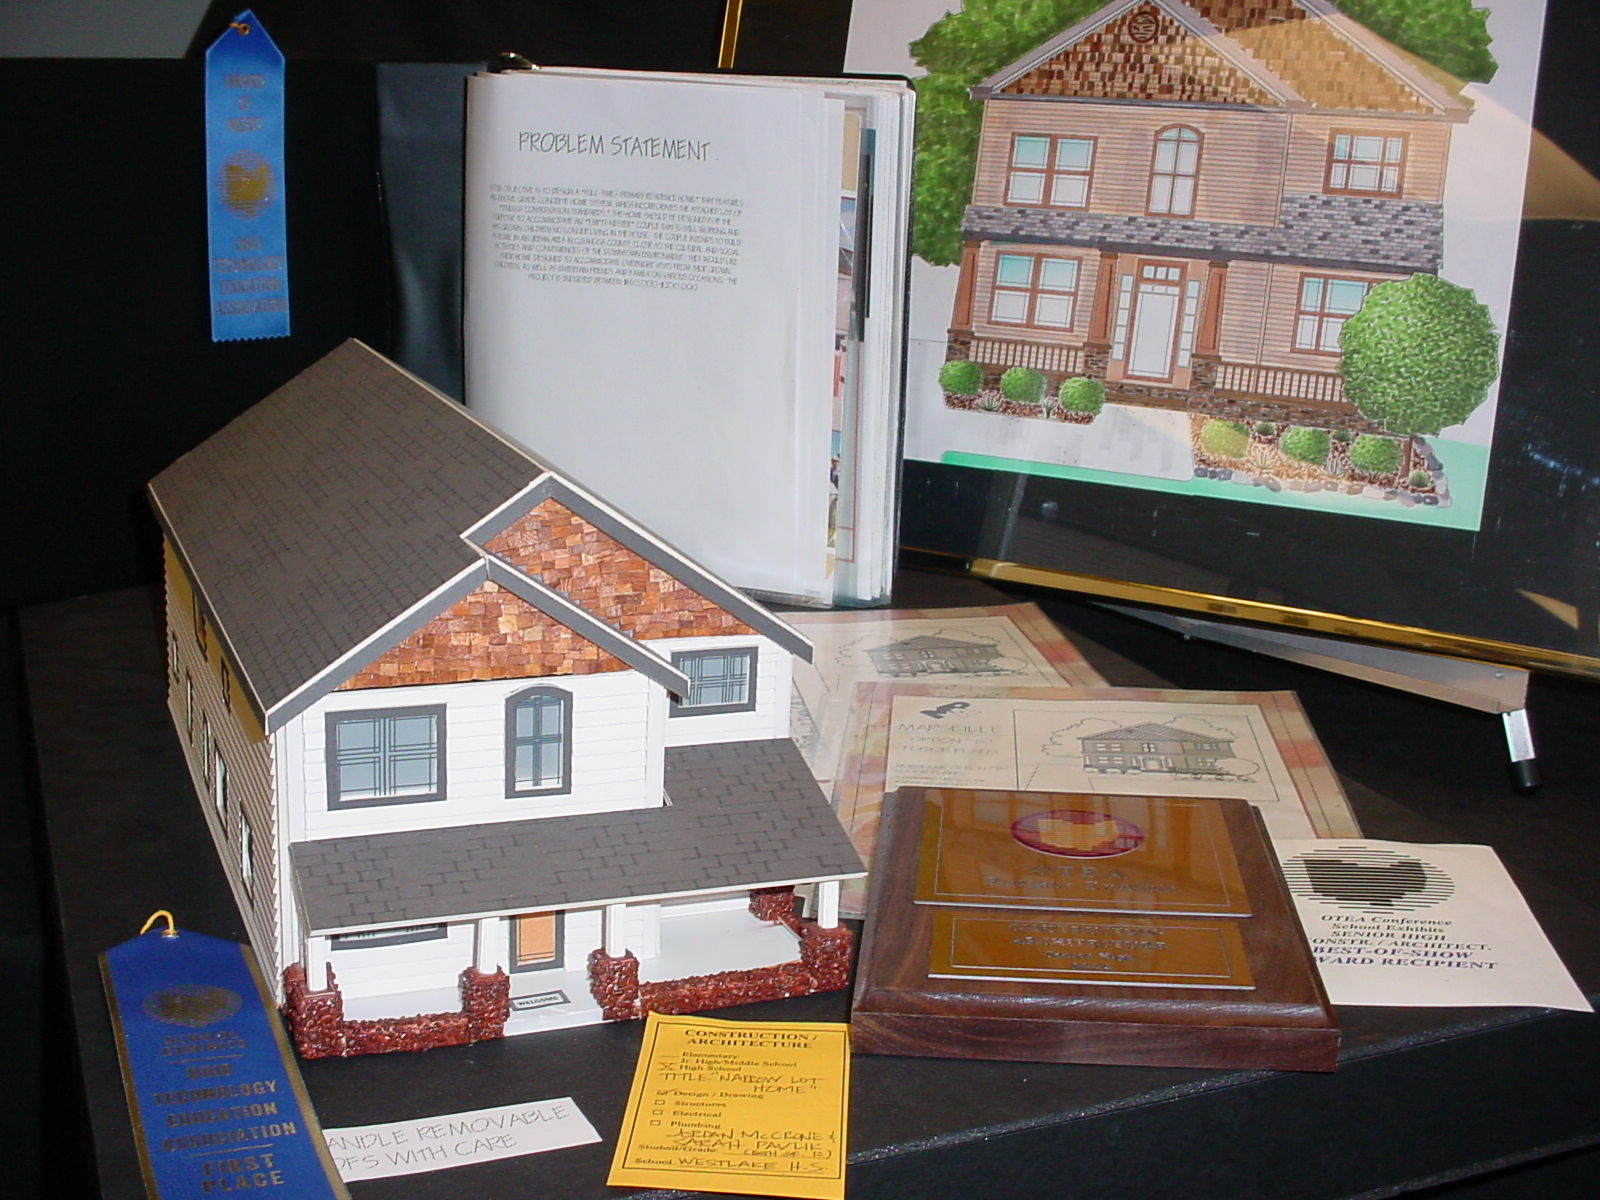 2004 Student Model Home Design Contest - model from the winning team.